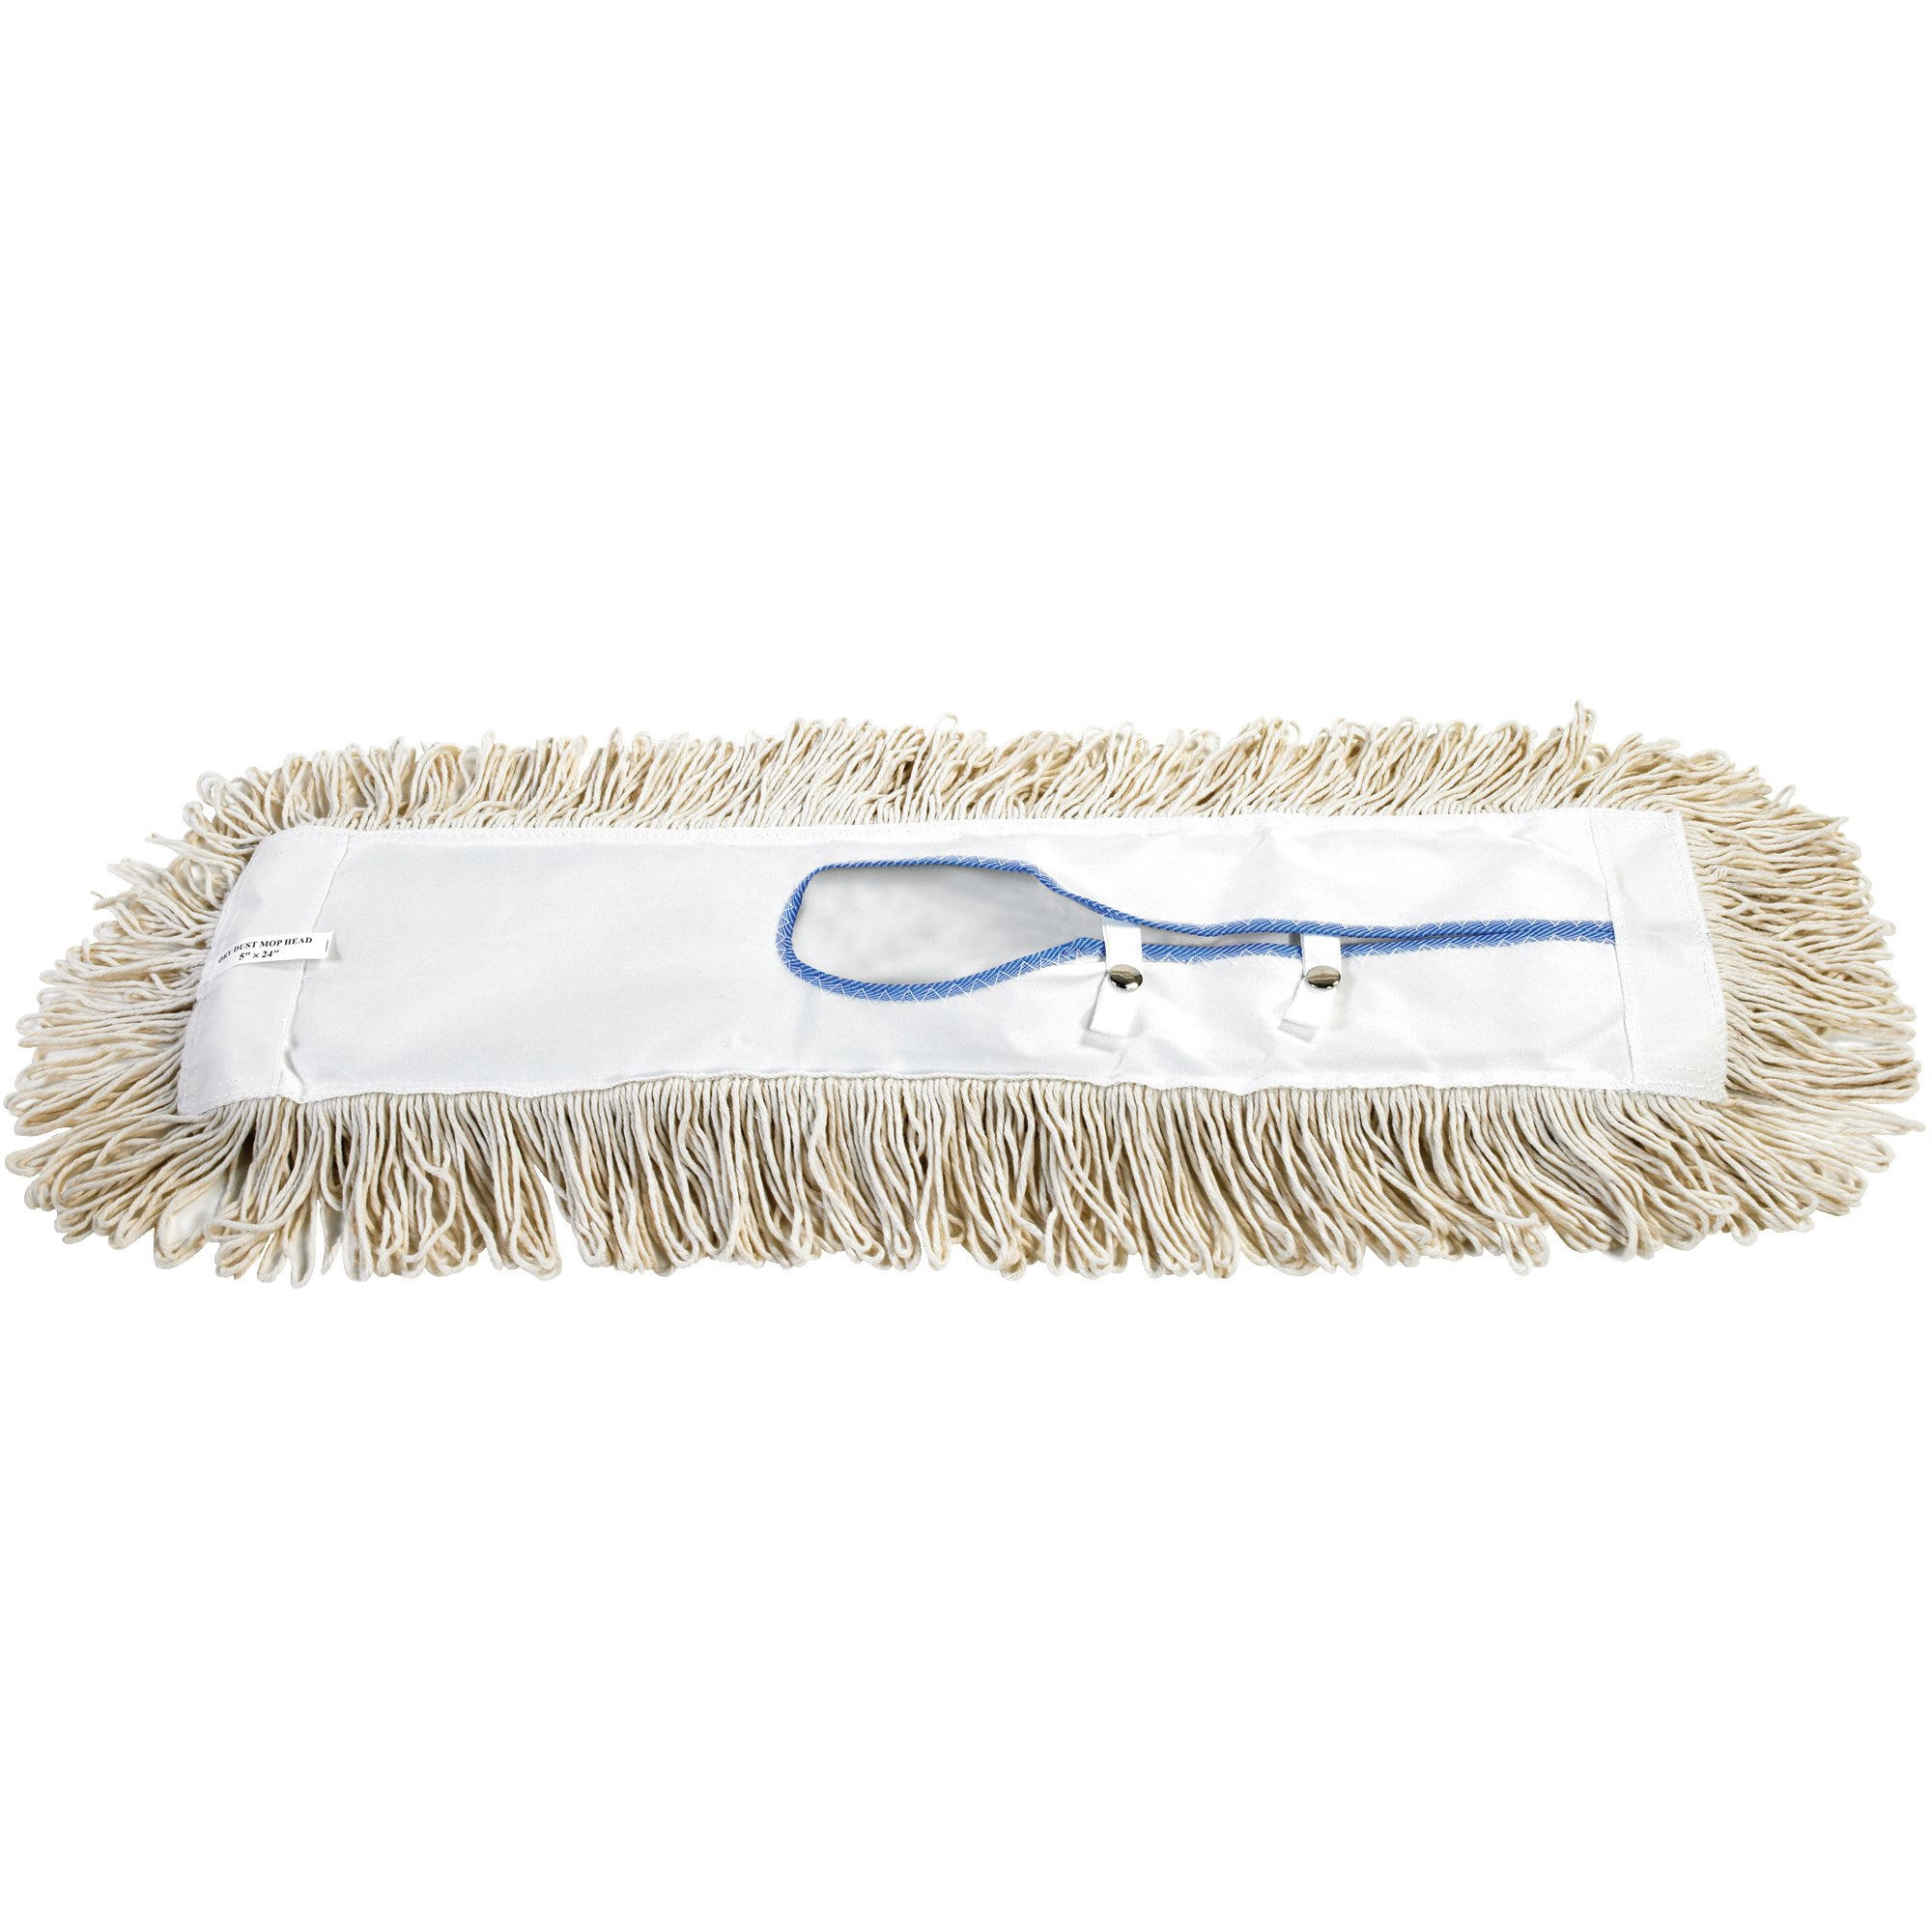 O-Cedar JAN137 36'' Economy Dry Dust Mop Replacement Heads (Pack of 12) by O-Cedar (Image #1)